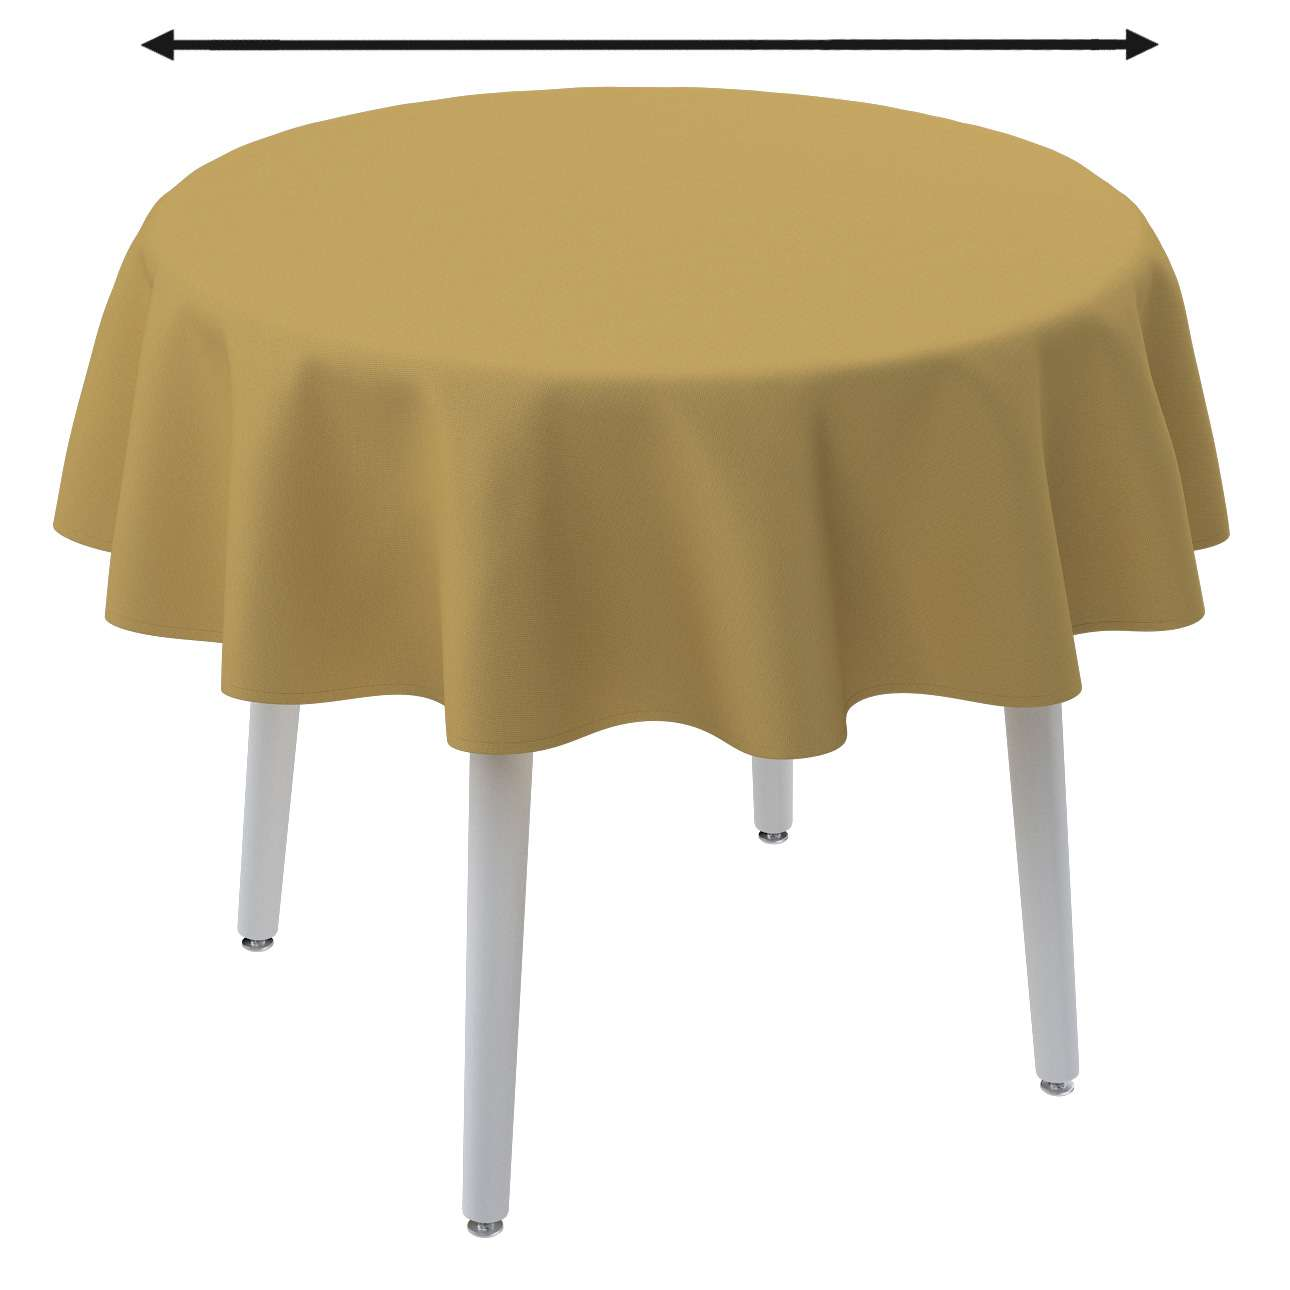 Round tablecloth in collection Panama Cotton, fabric: 702-41